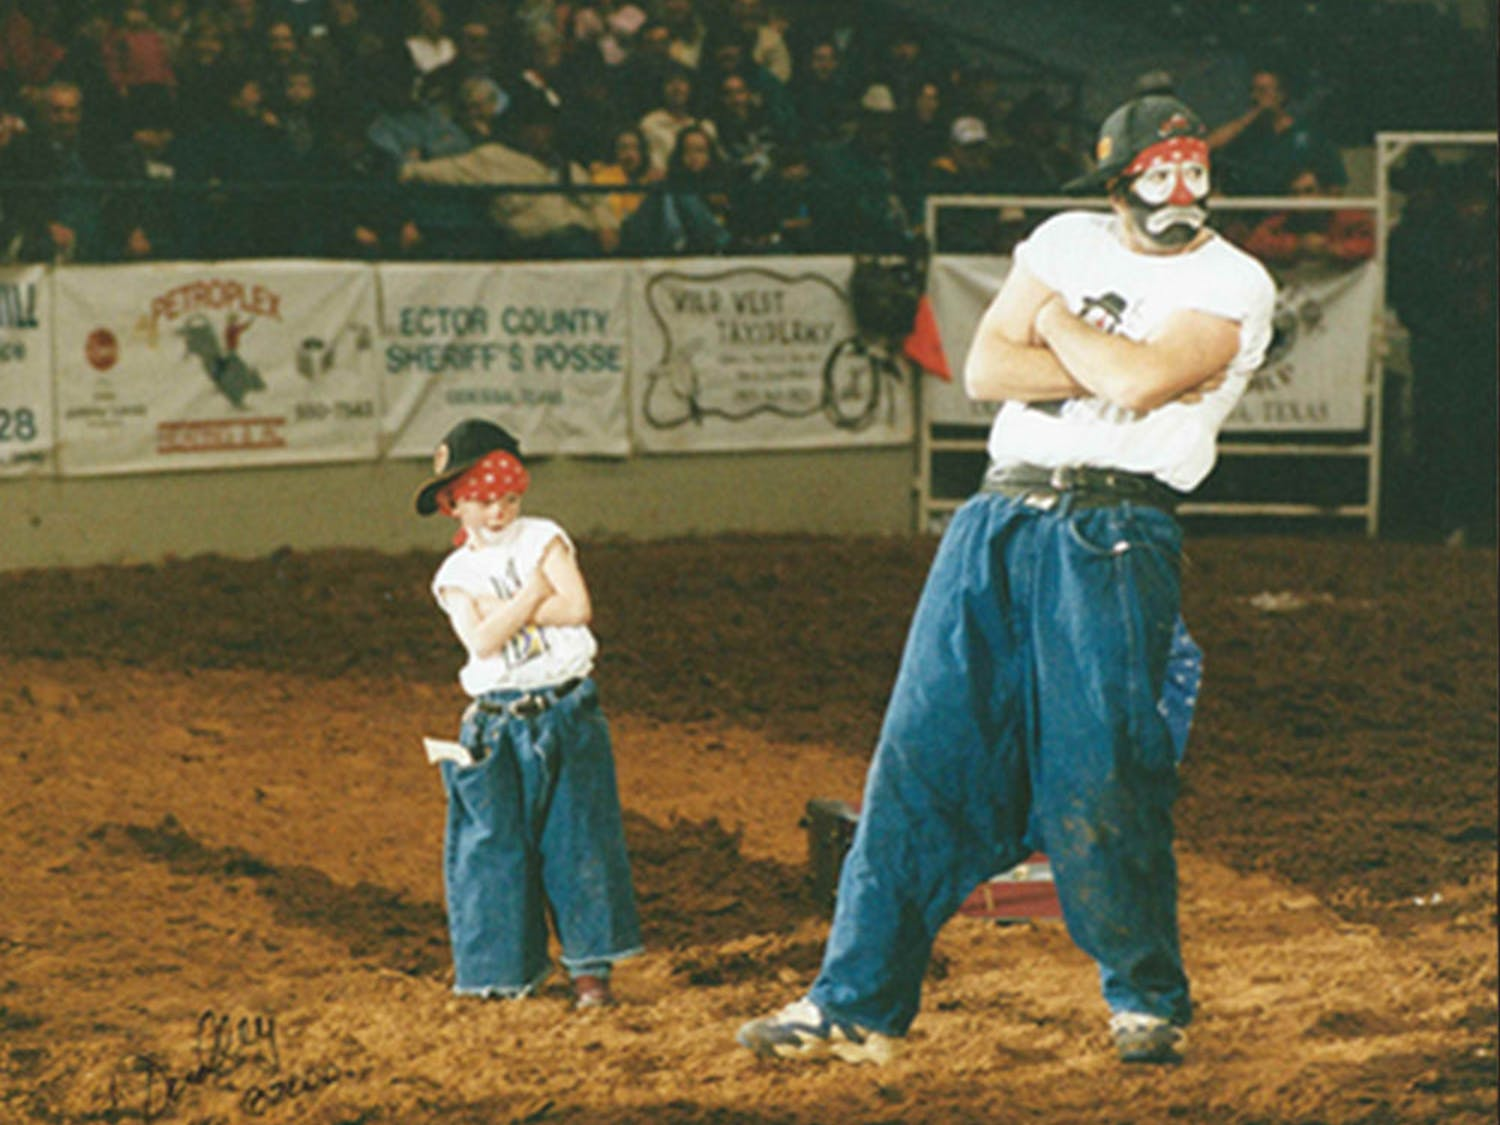 Rodeo clowns Hollywood Harris and his son, Boogerhead, perform a skit in which Harris pulled boogerhead out of a suitcase. Now 22, Boogerhead goes by the name Brinson James the Entertainer. He has been performing with his dad since he was 2.